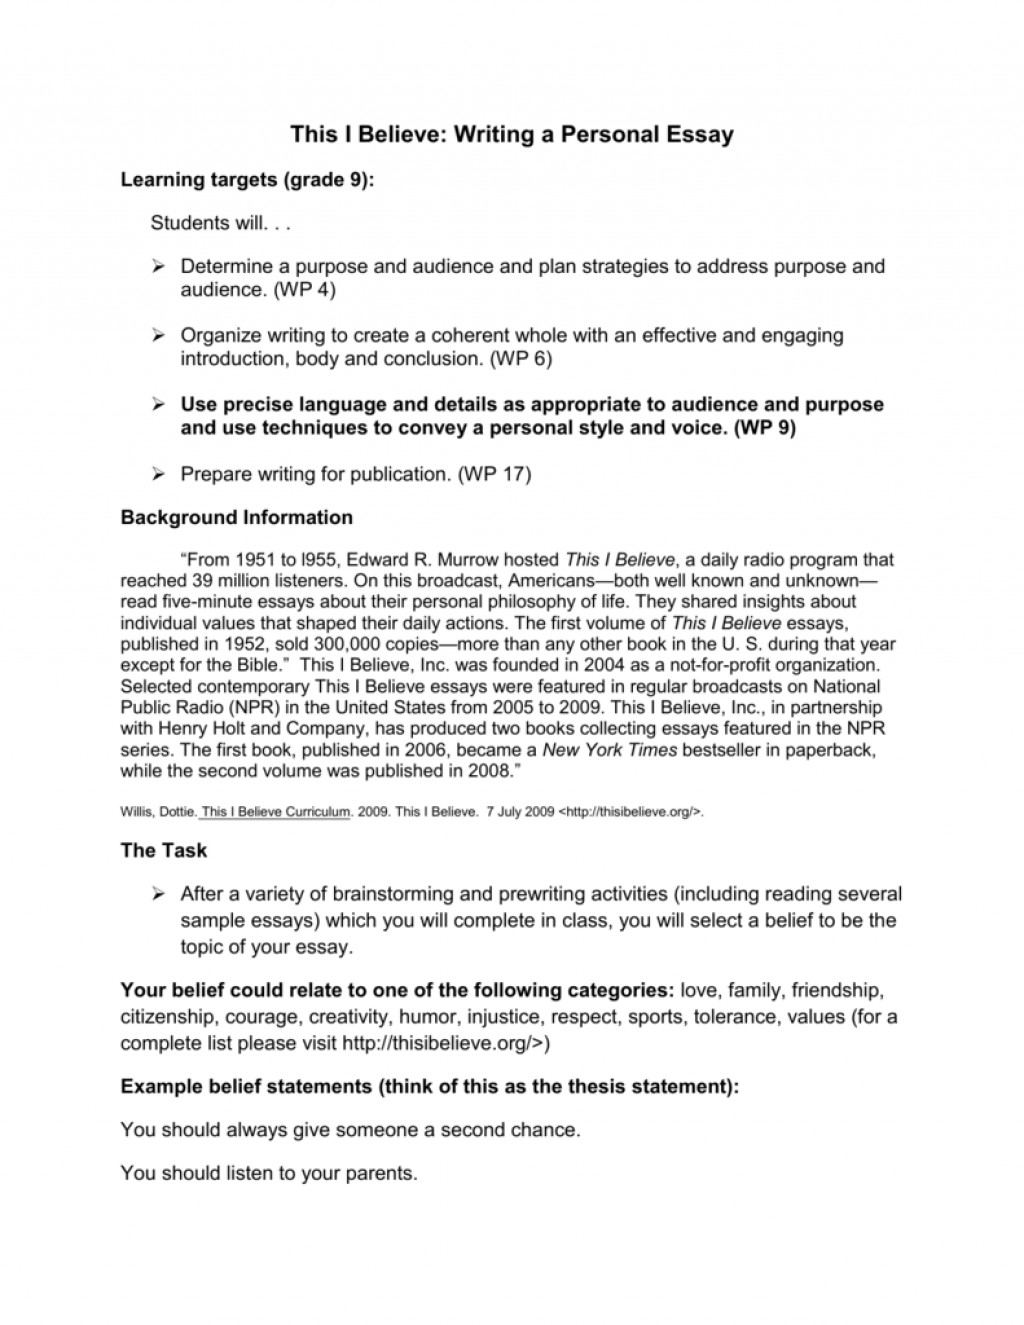 004 I Believe Essay Example 006750112 1 Stunning This Personal Examples Paper Large